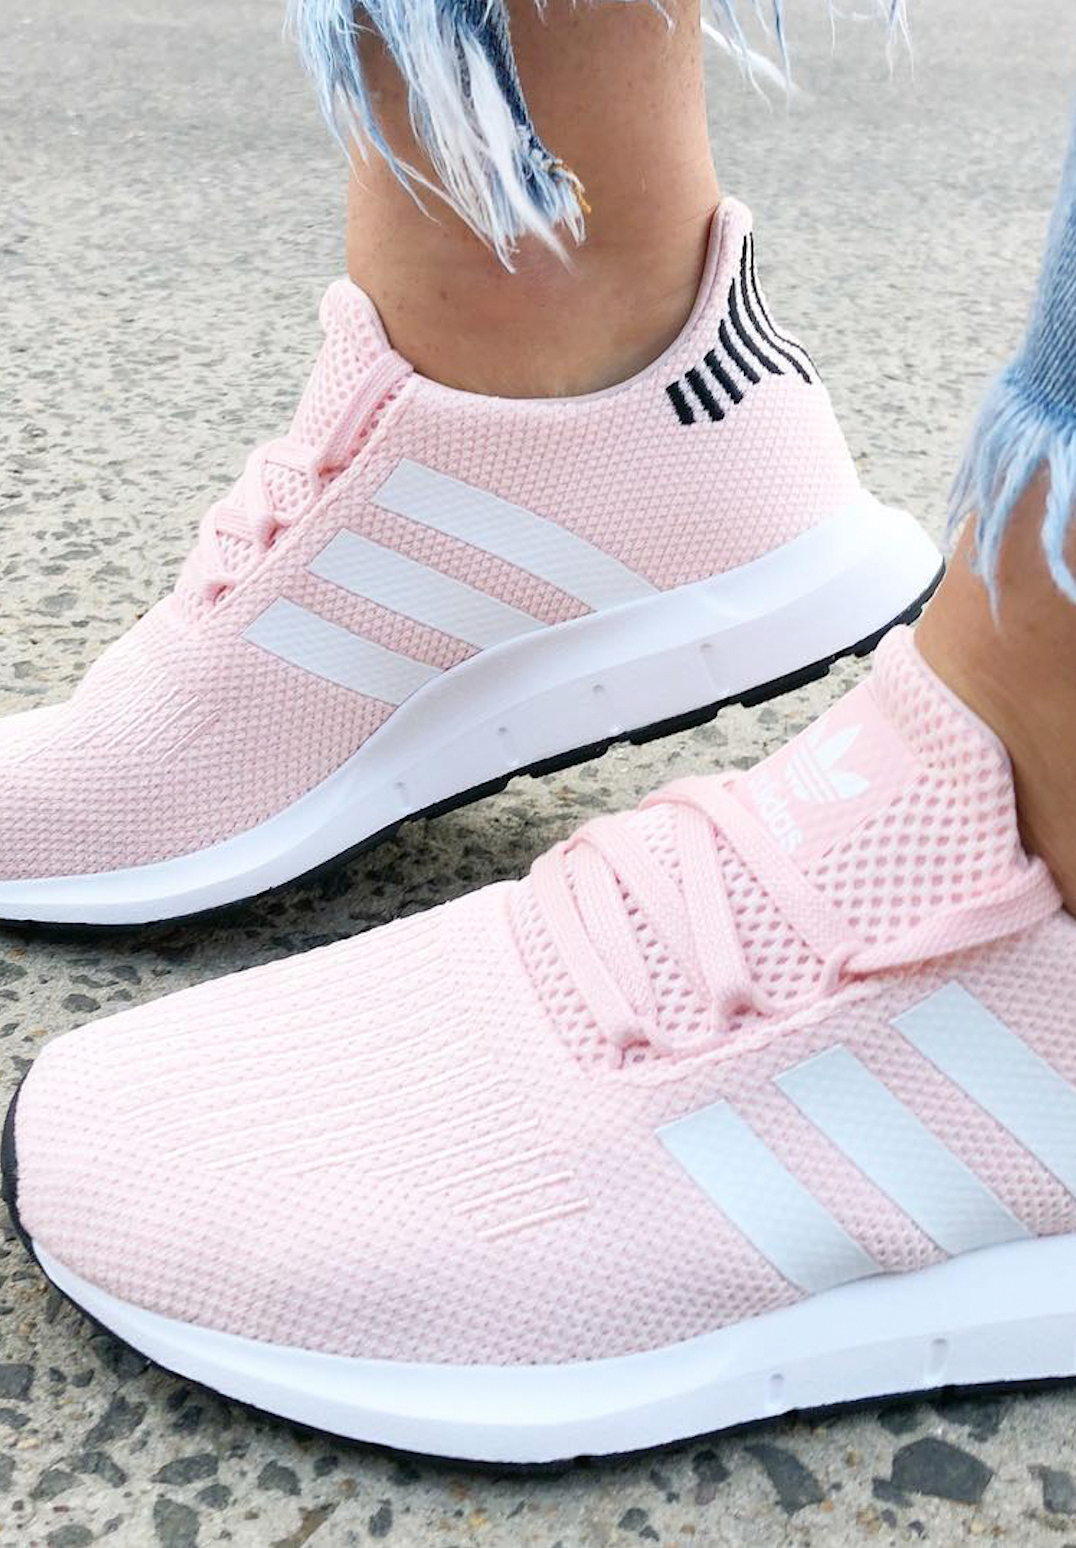 Perplejo cojo en caso  adidas Swift Run Sneakers in Icy Pink. Seriously stylish shoes 2018.  #stylishwomensclothing | Stylish shoes, Adidas shoes women, Addidas shoes